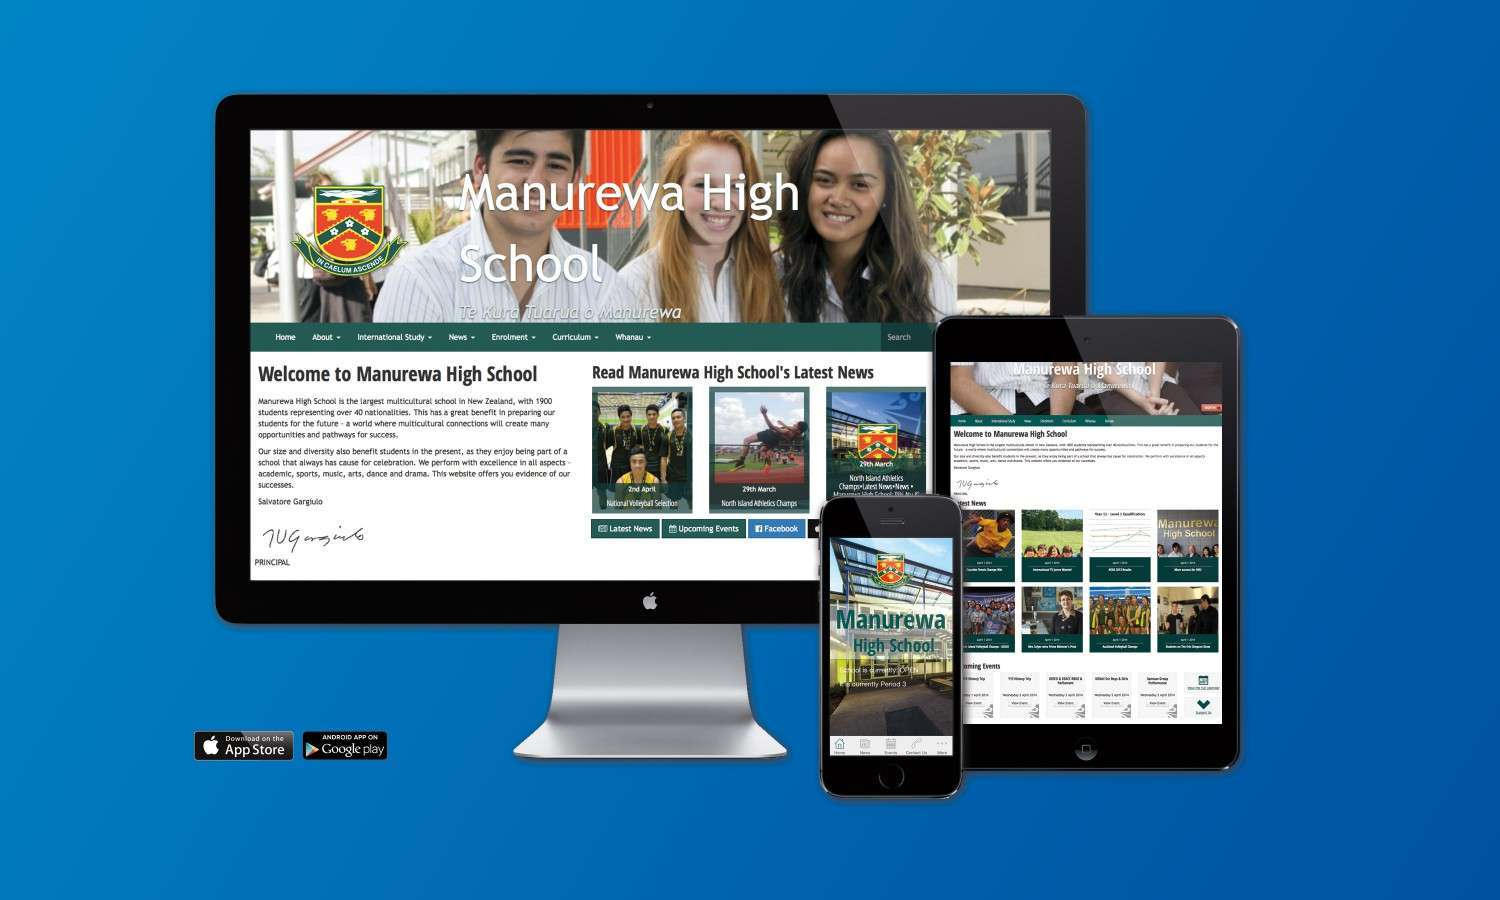 Manurewa High School Website and Mobile applications